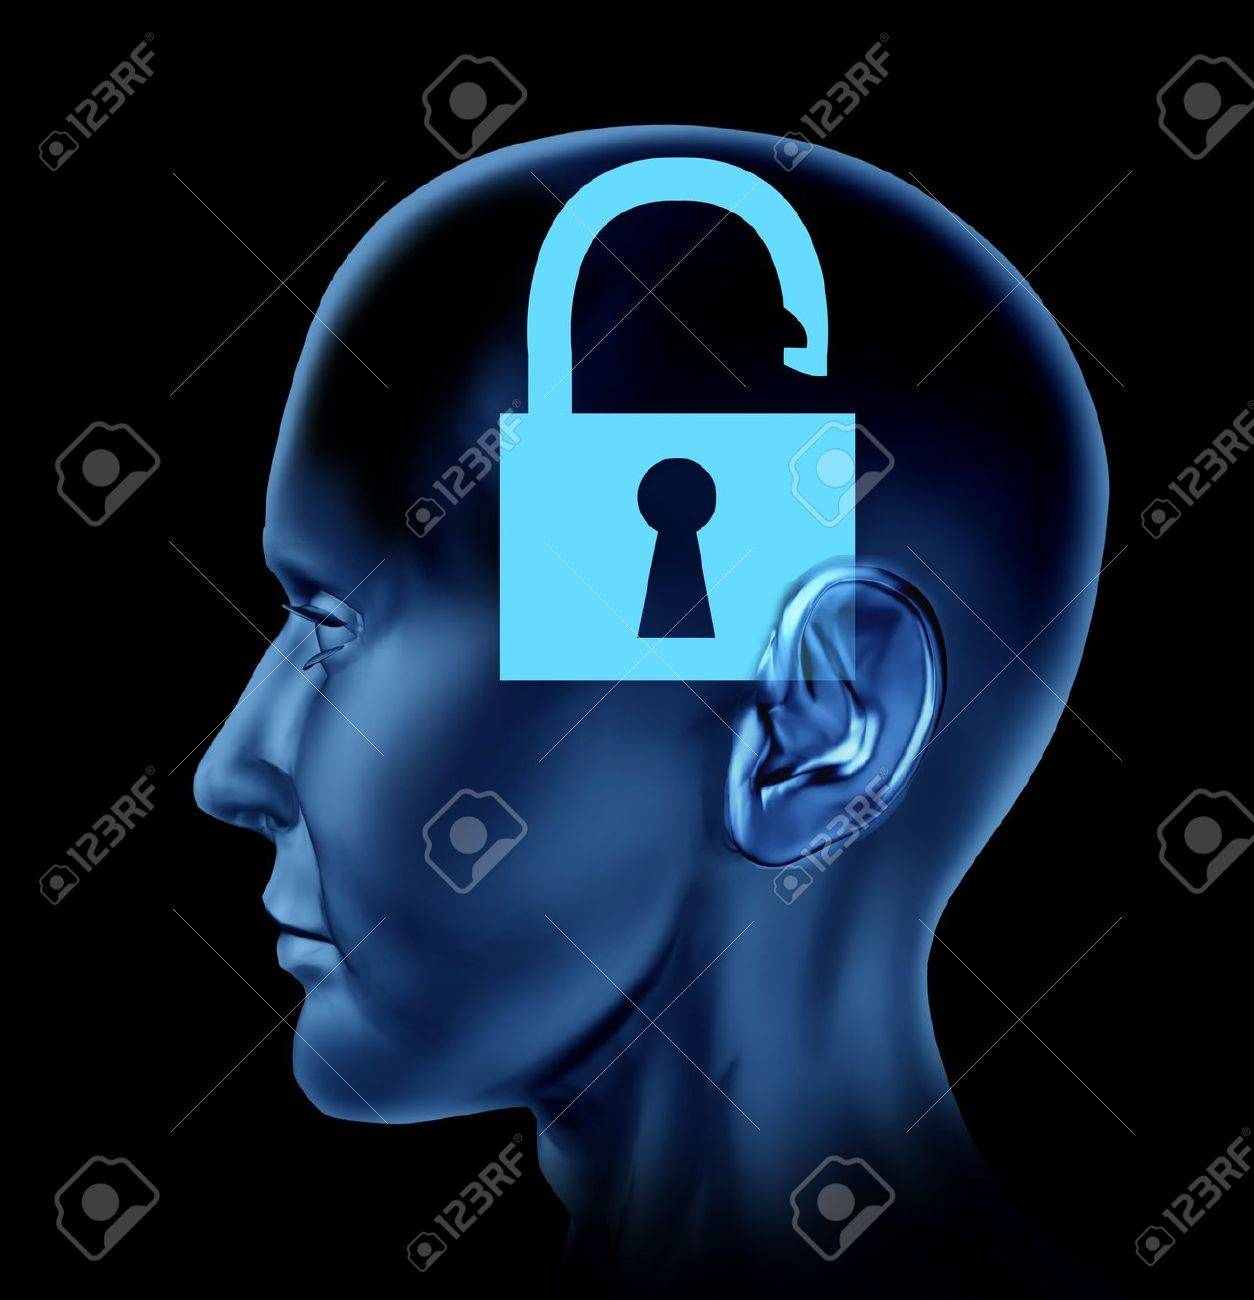 Open mind human brain as a symbol of opened new thinking representing creativity on a white background Stock Photo - 14119132